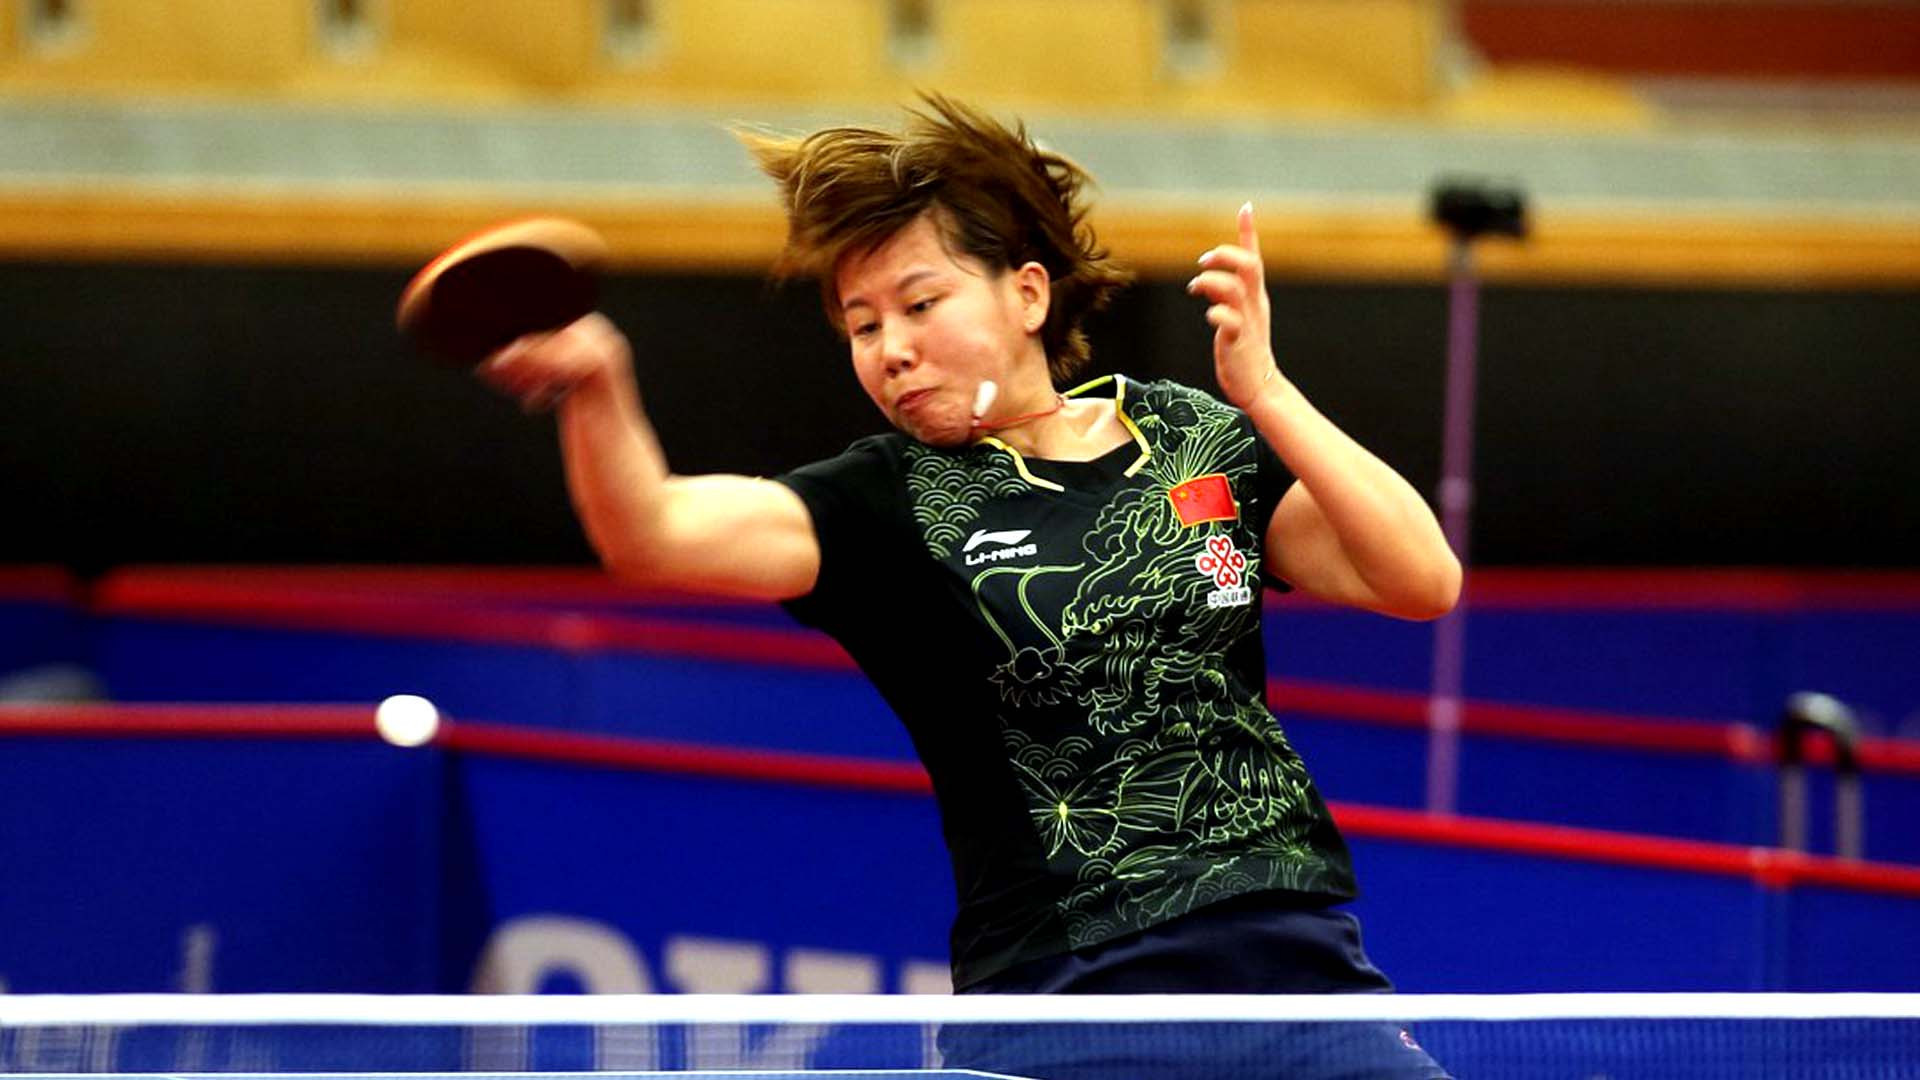 Qualifer to face world and Olympic champion in ITTF Swedish Open final